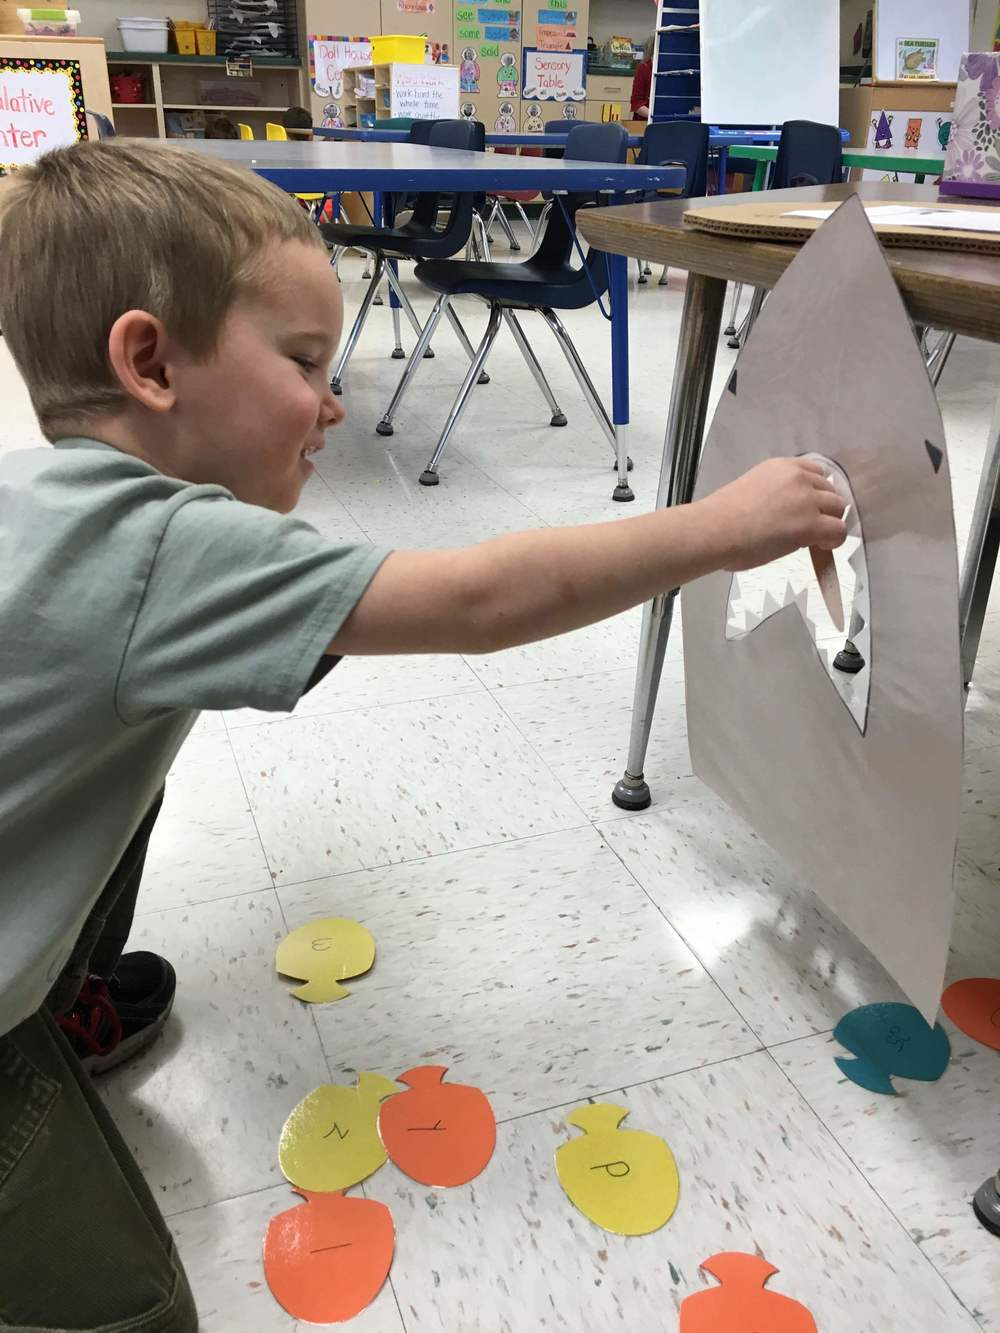 reviewing lowercase letters, feeding fish to the shark!